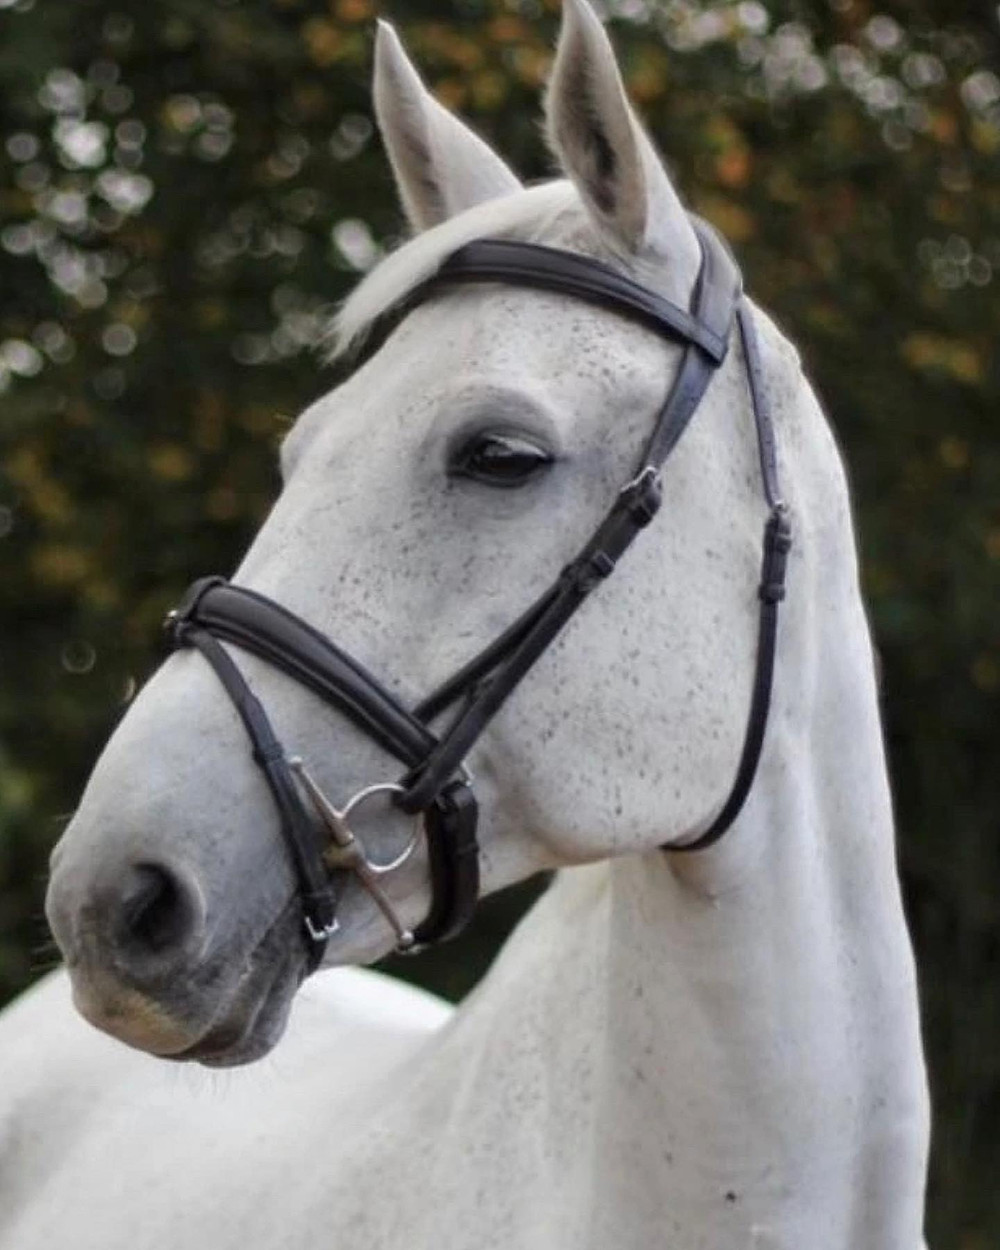 equestrian Christmas gift guide - bridle